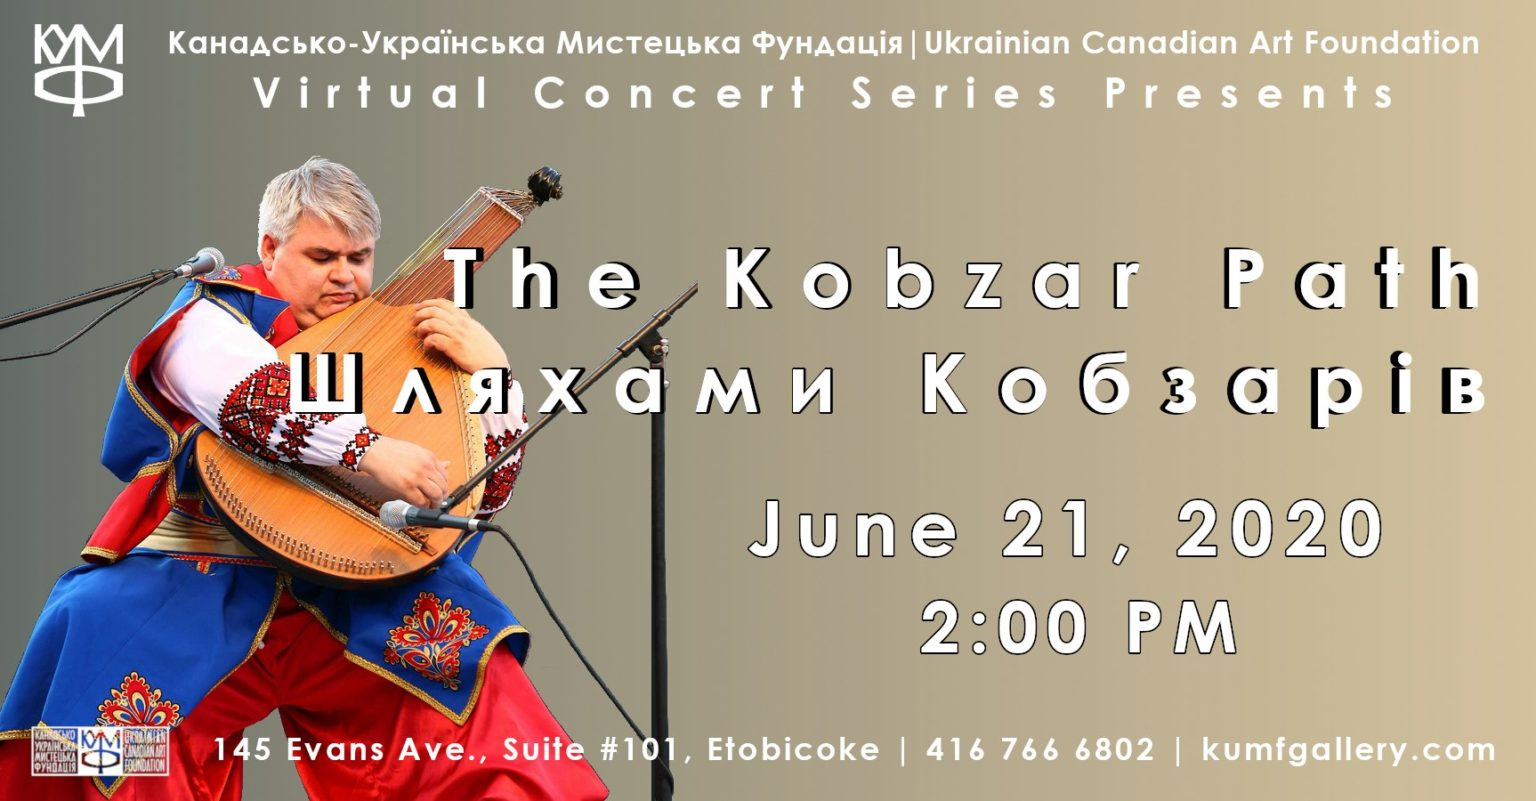 The Kobzar Path. June 21, 2020 at 2pm